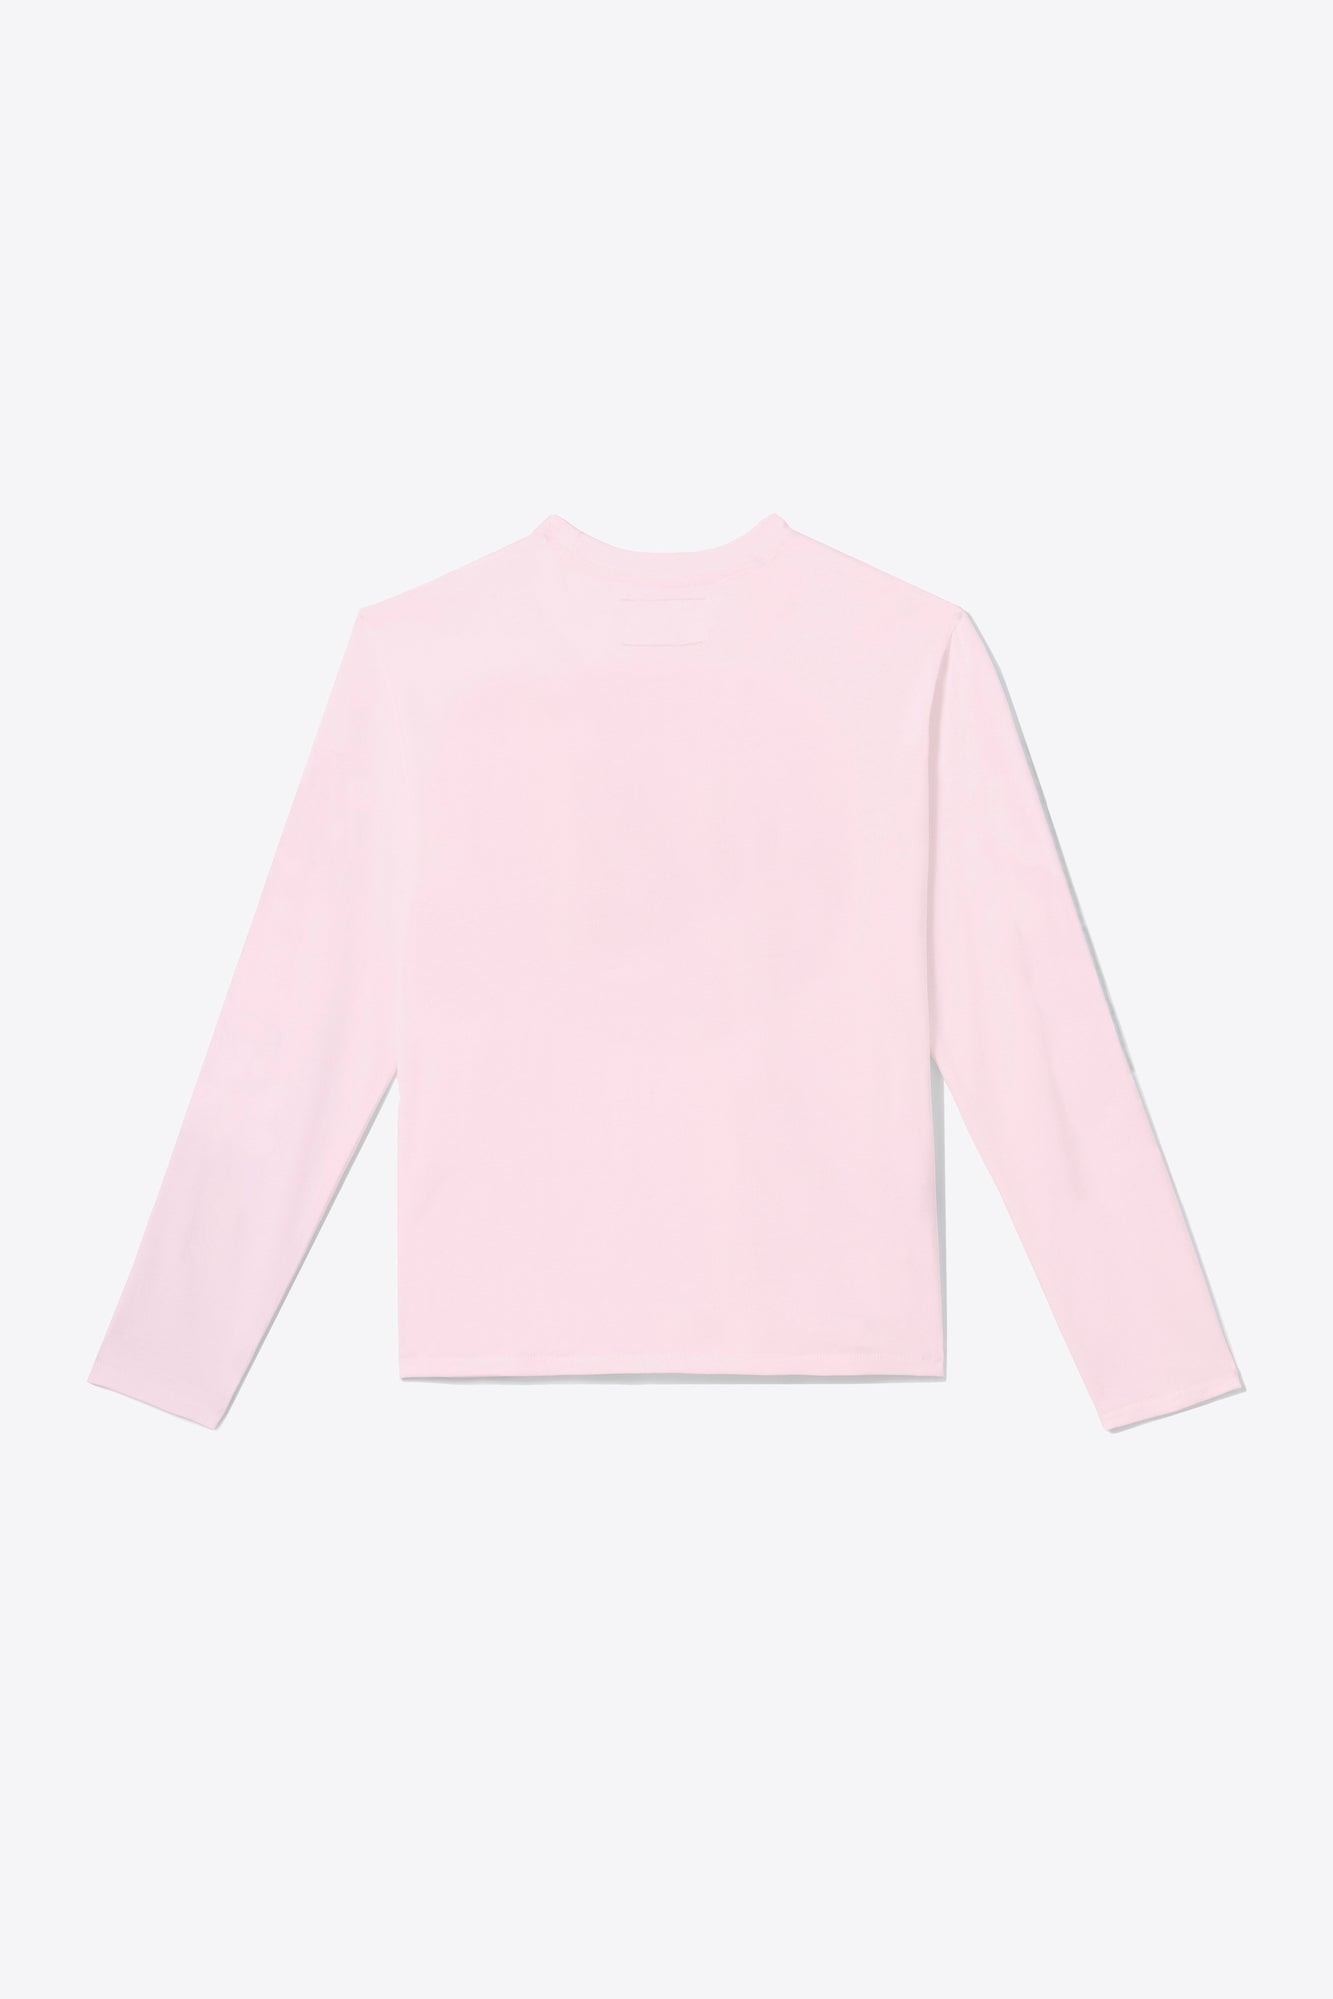 Destroy the Patriarchy Long Sleeve (Pale Pink)